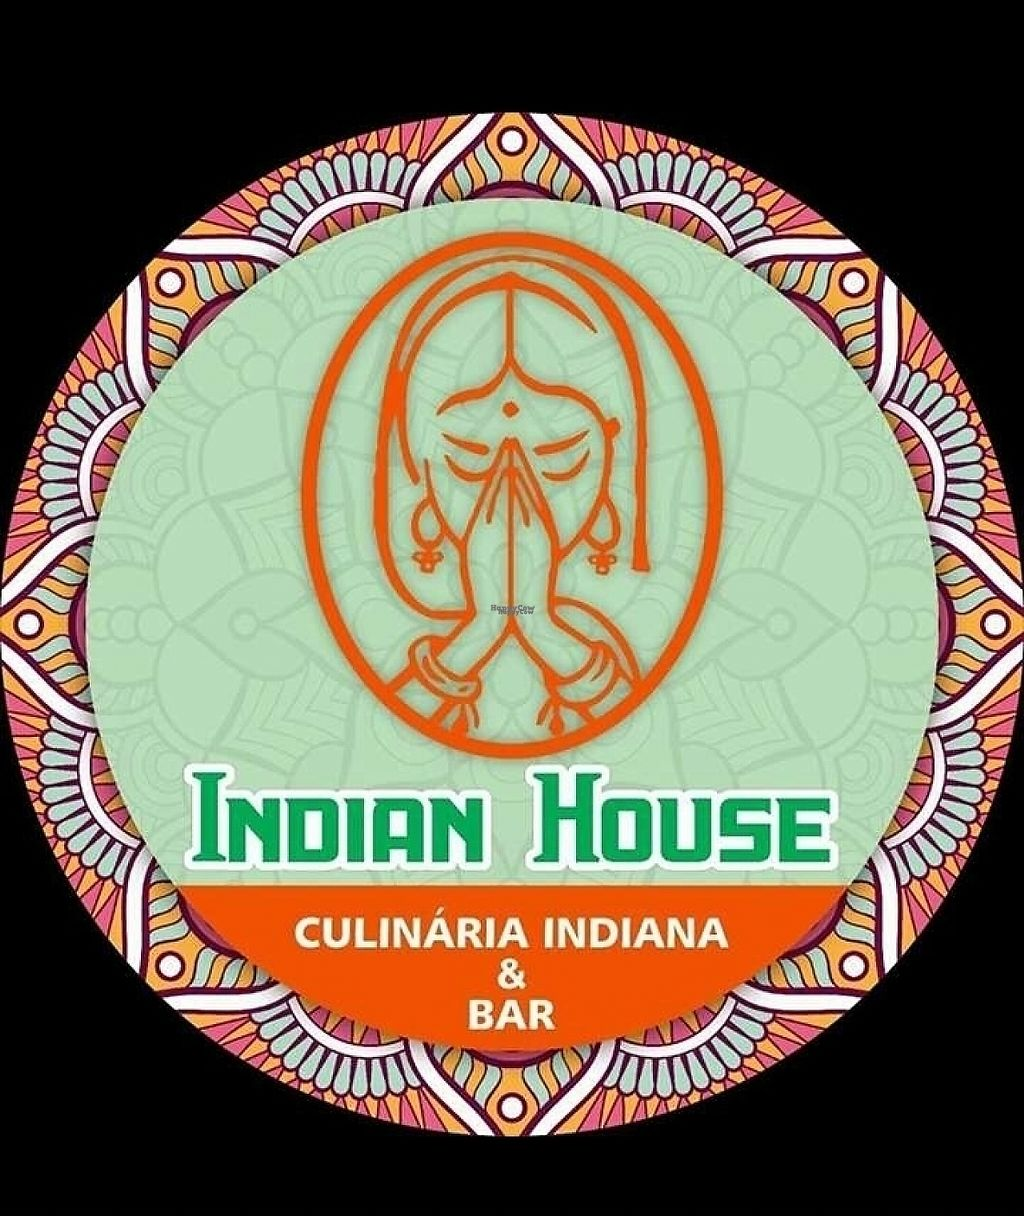 """Photo of Indian House  by <a href=""""/members/profile/bfeitosa"""">bfeitosa</a> <br/>logo <br/> February 24, 2017  - <a href='/contact/abuse/image/87208/230004'>Report</a>"""